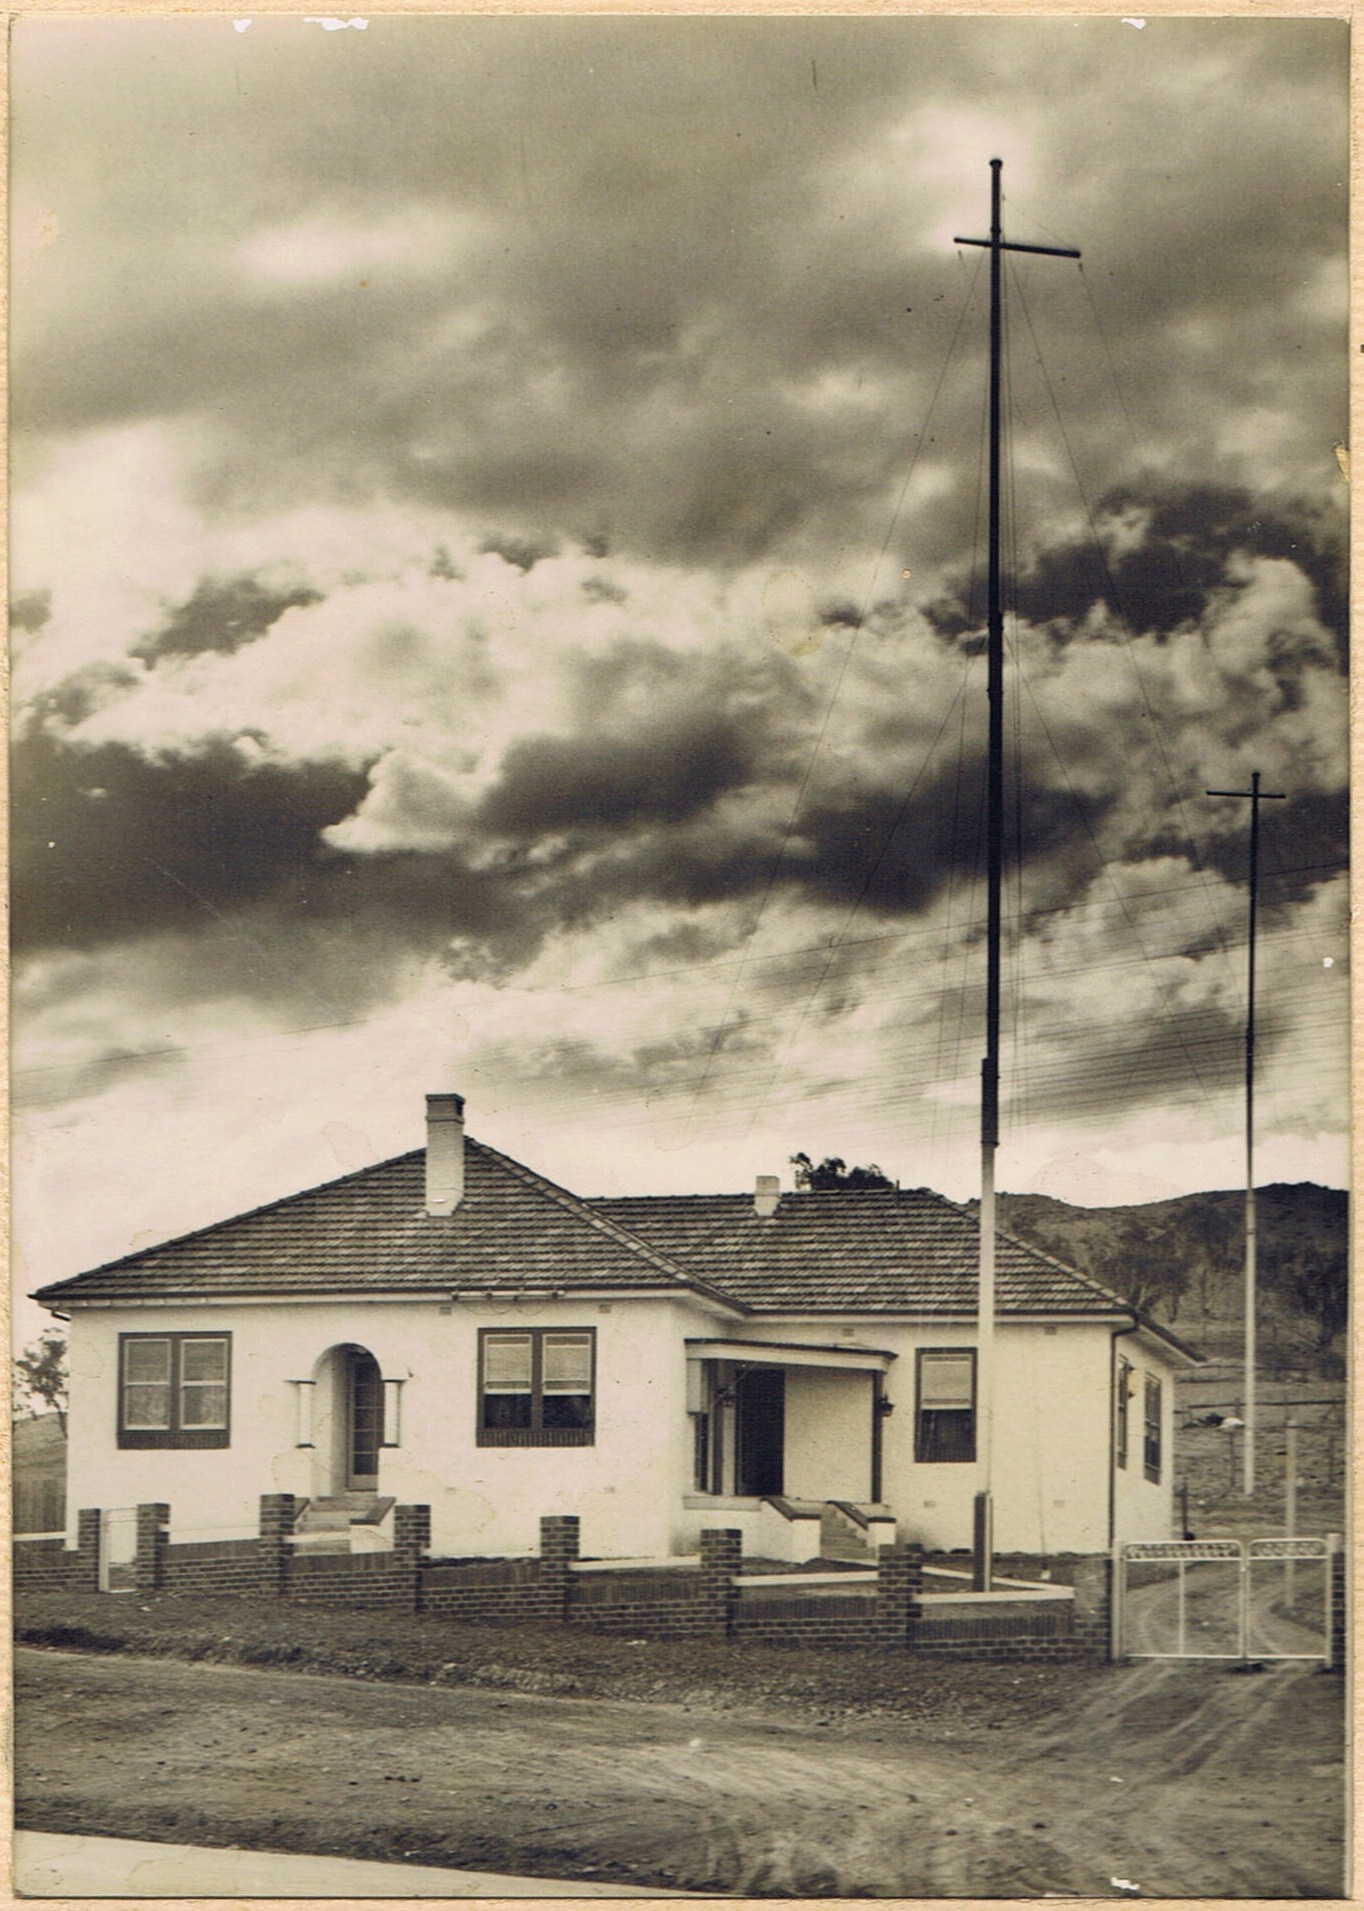 2TM 's first Broadcasting studio built 1934